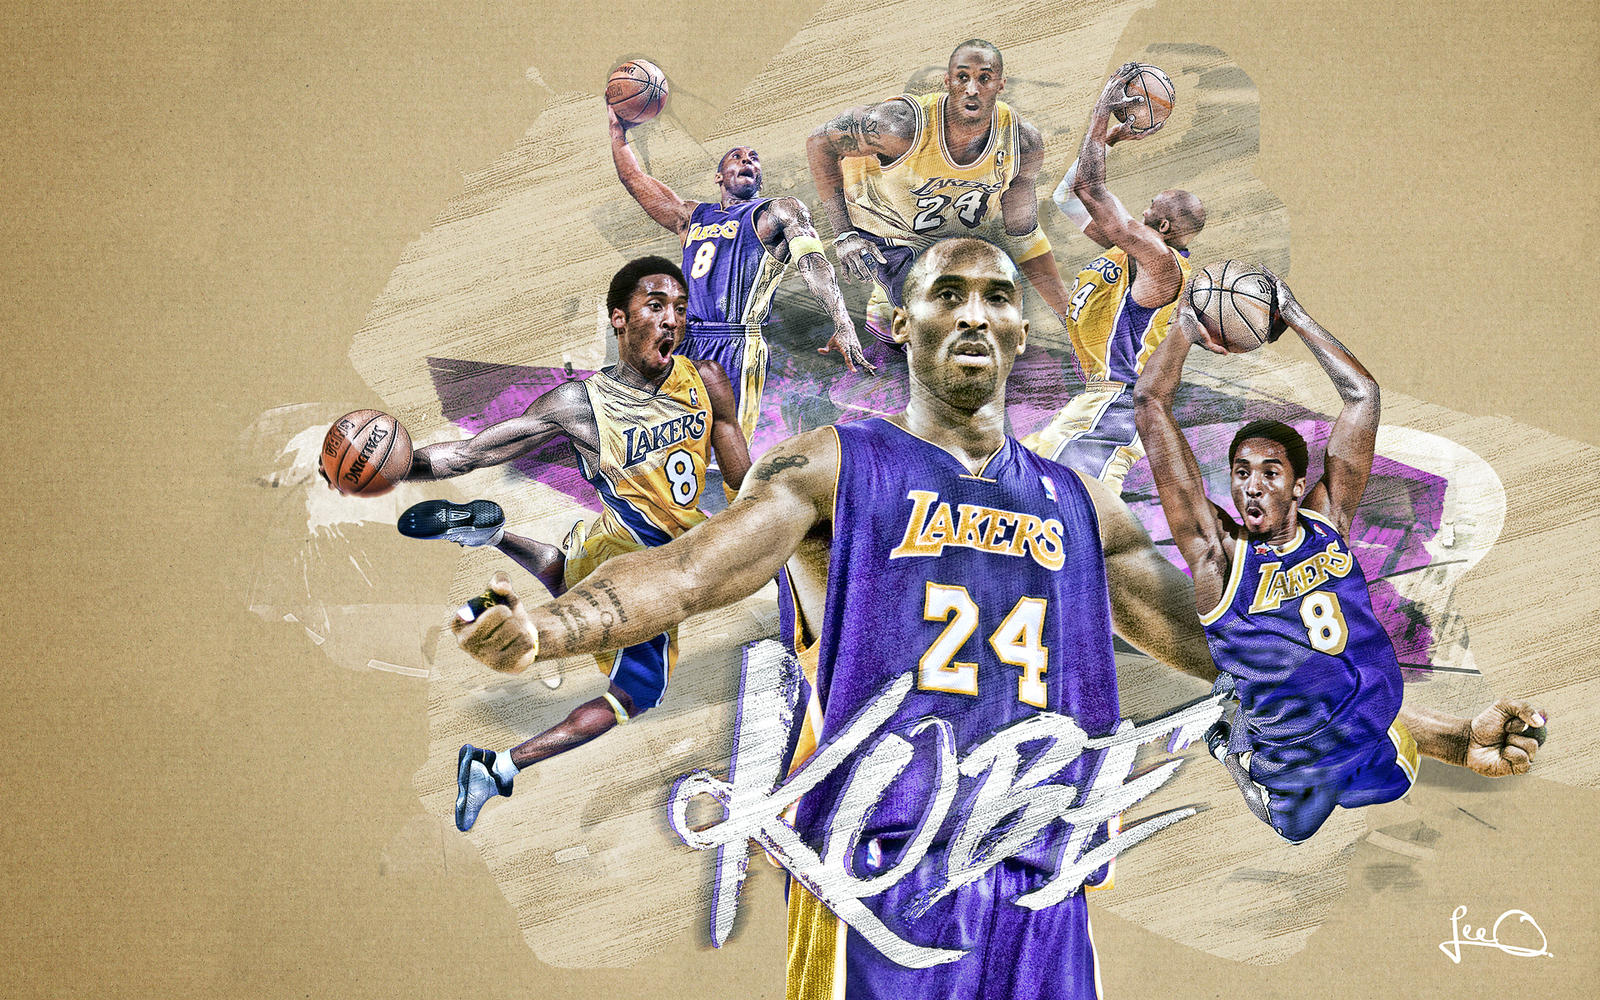 Kobe Bryant Wallpaper by skythlee on DeviantArt